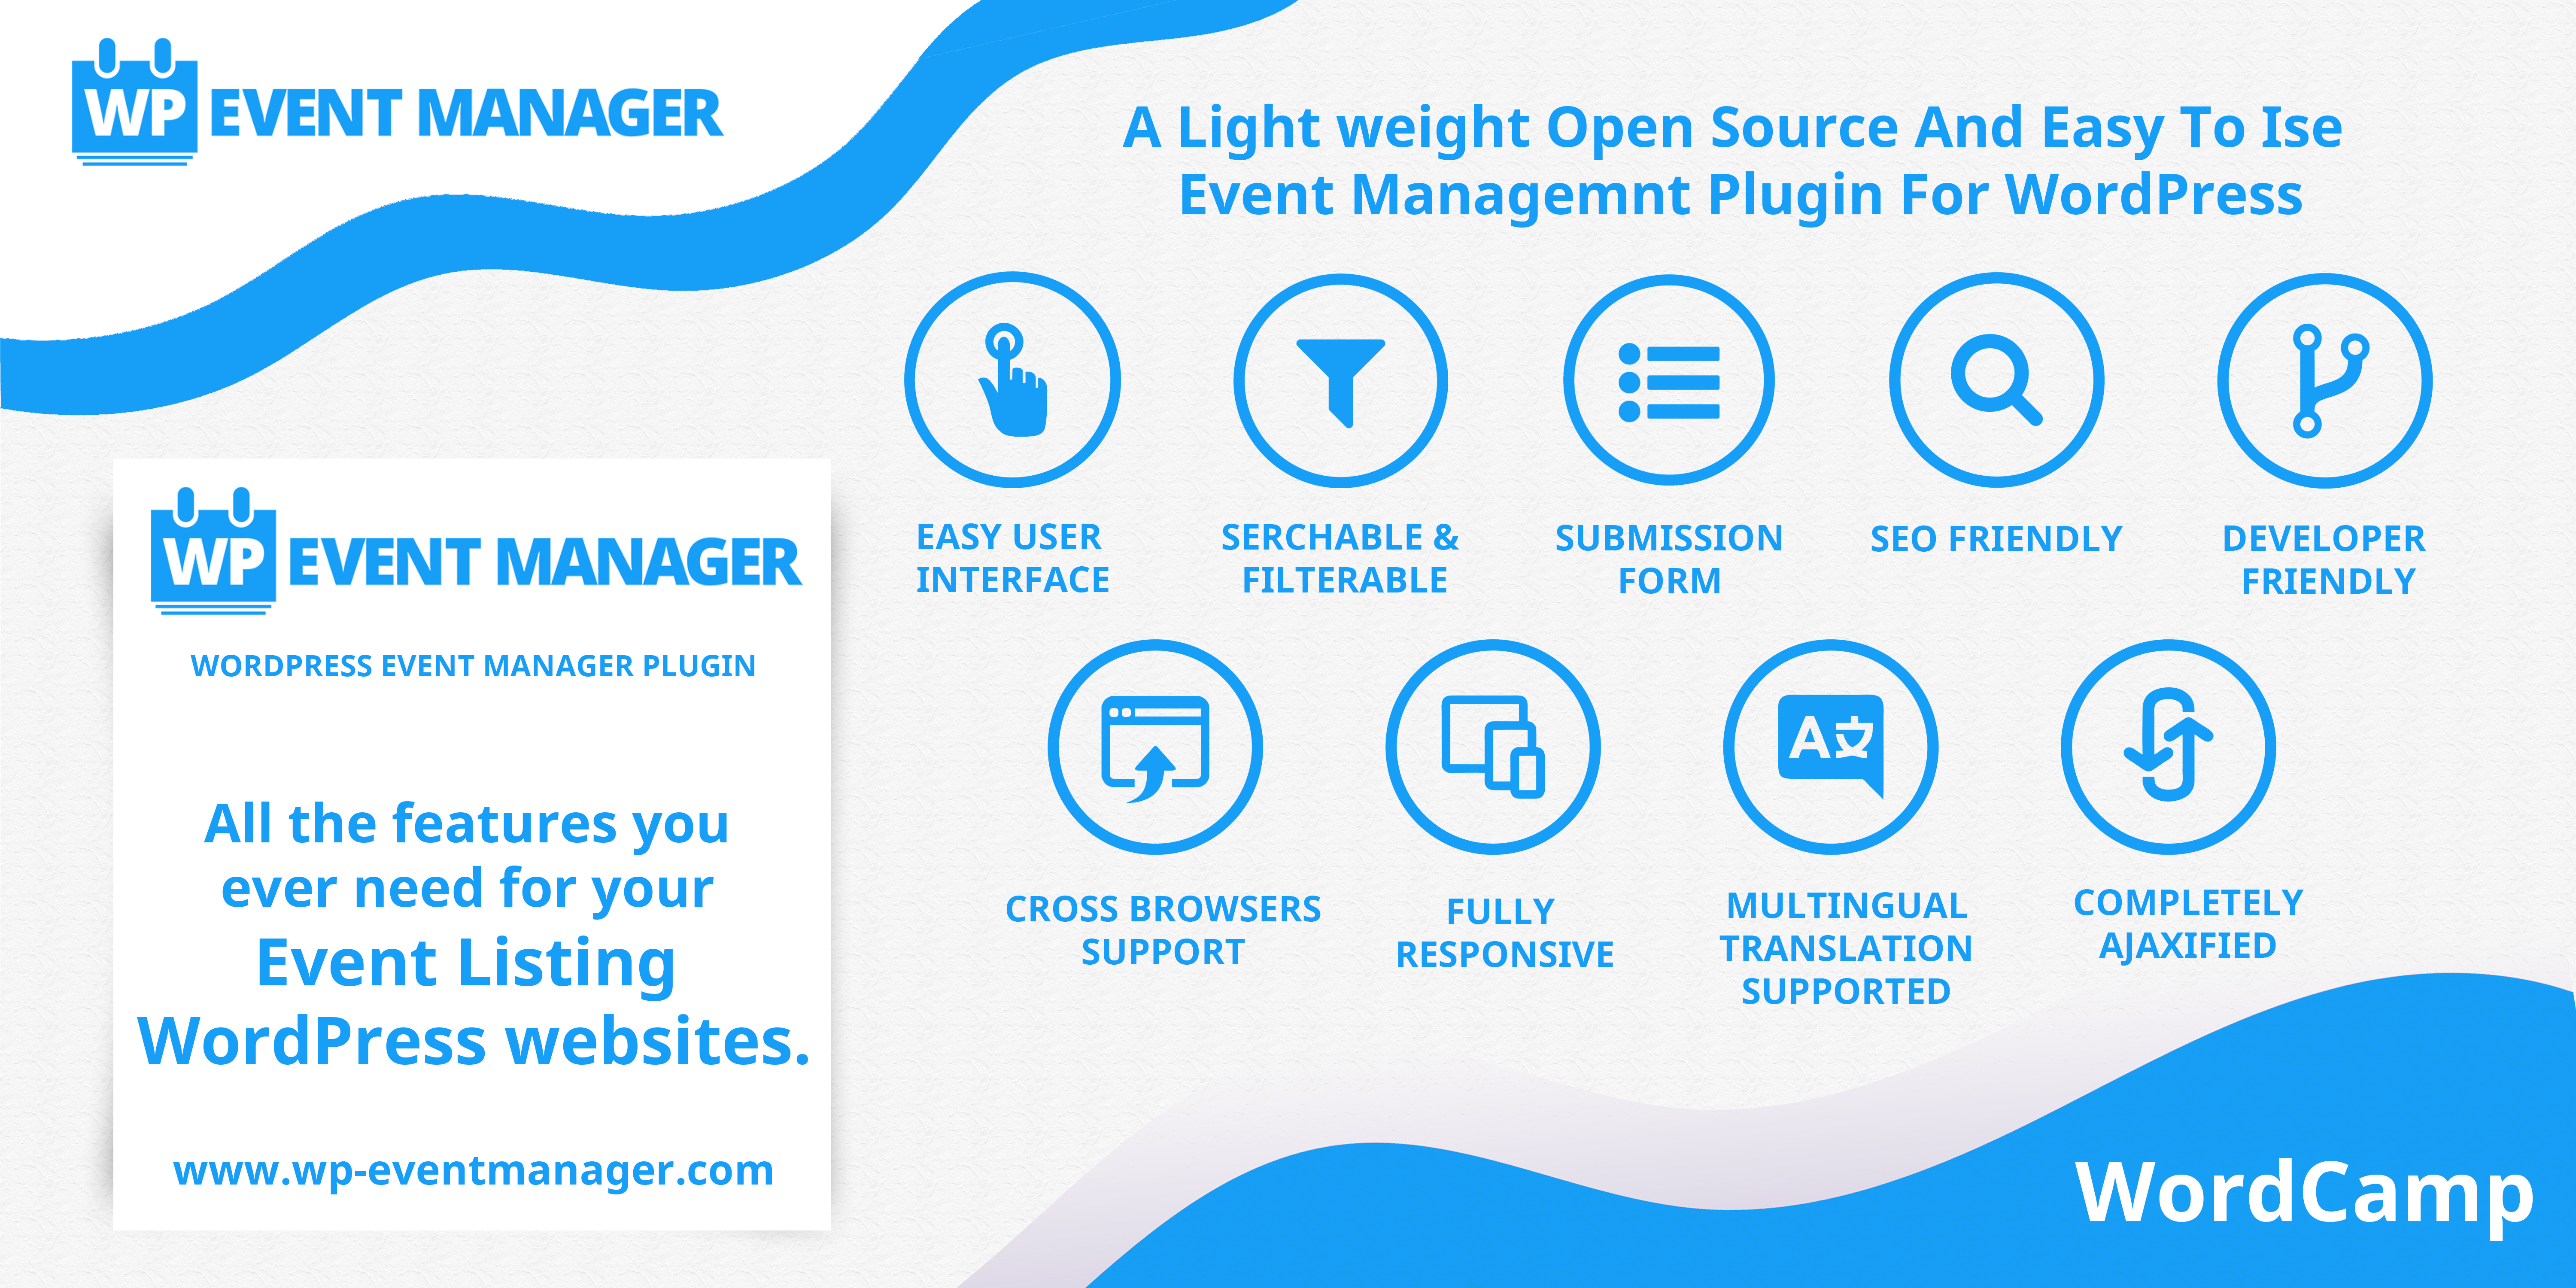 Thank You WP Event Manager For Being Our Platinum Sponsor WordCamp Biratnagar 2018 With Your Warm Support We Will Make First Ever Grand